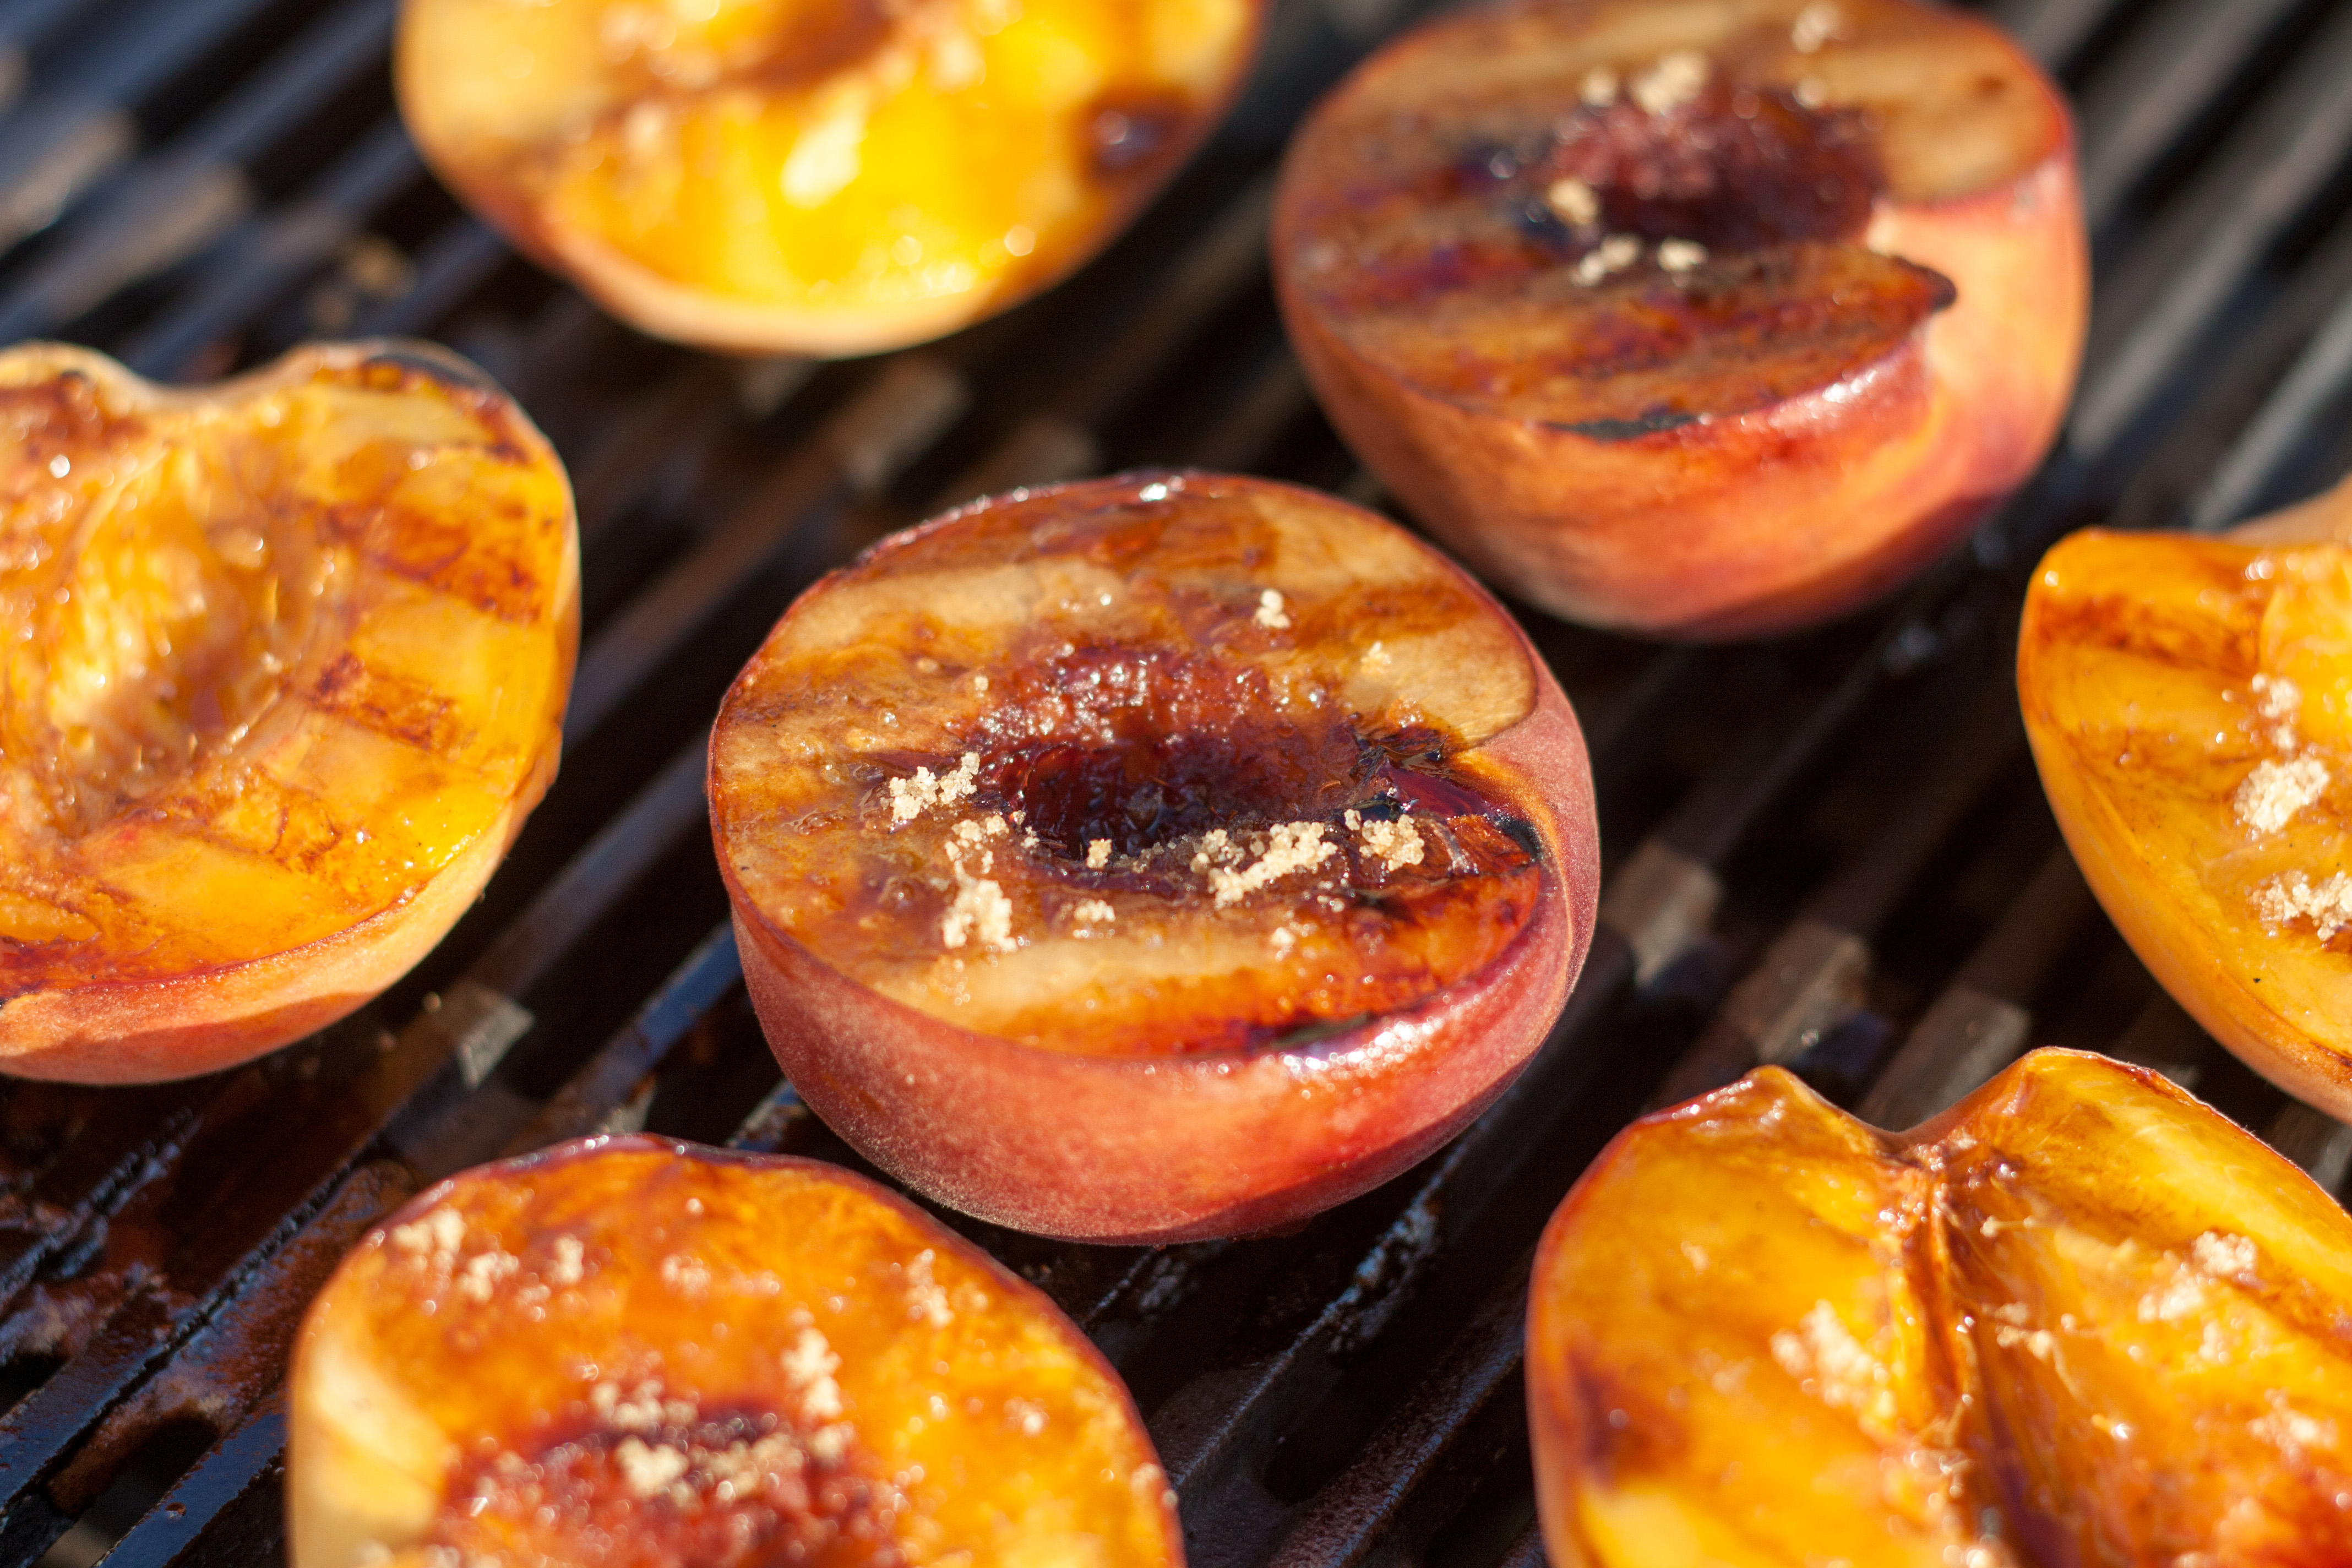 Grilled Peaches by Braised Anatomy